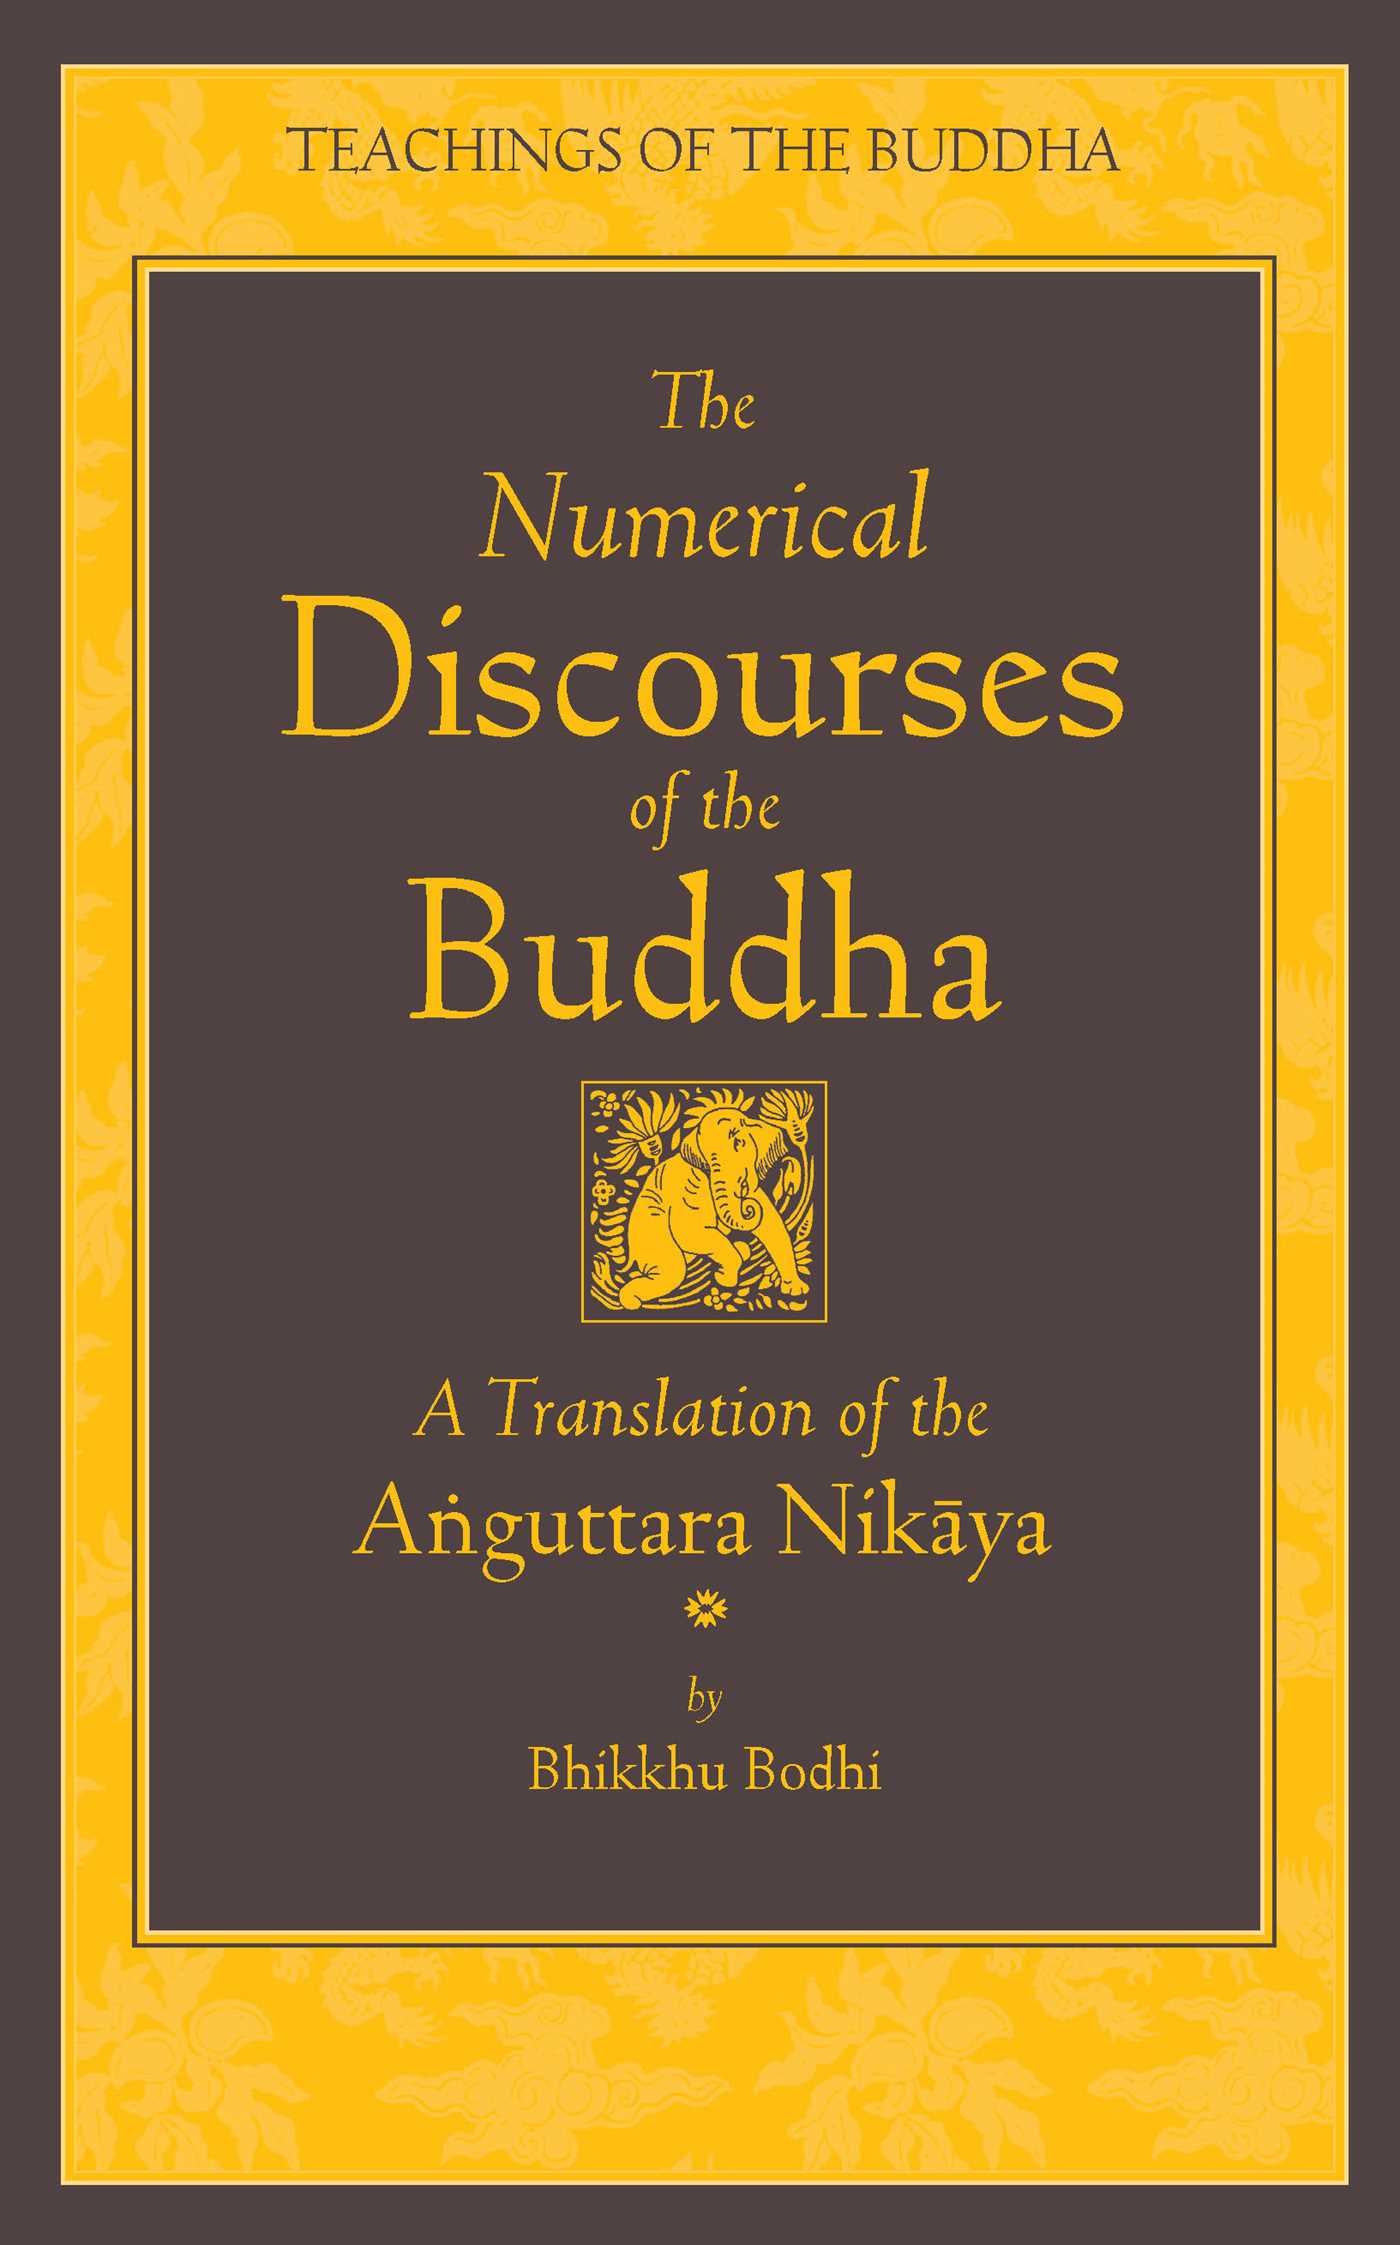 The numerical discourses of the buddha 9781614290407 hr